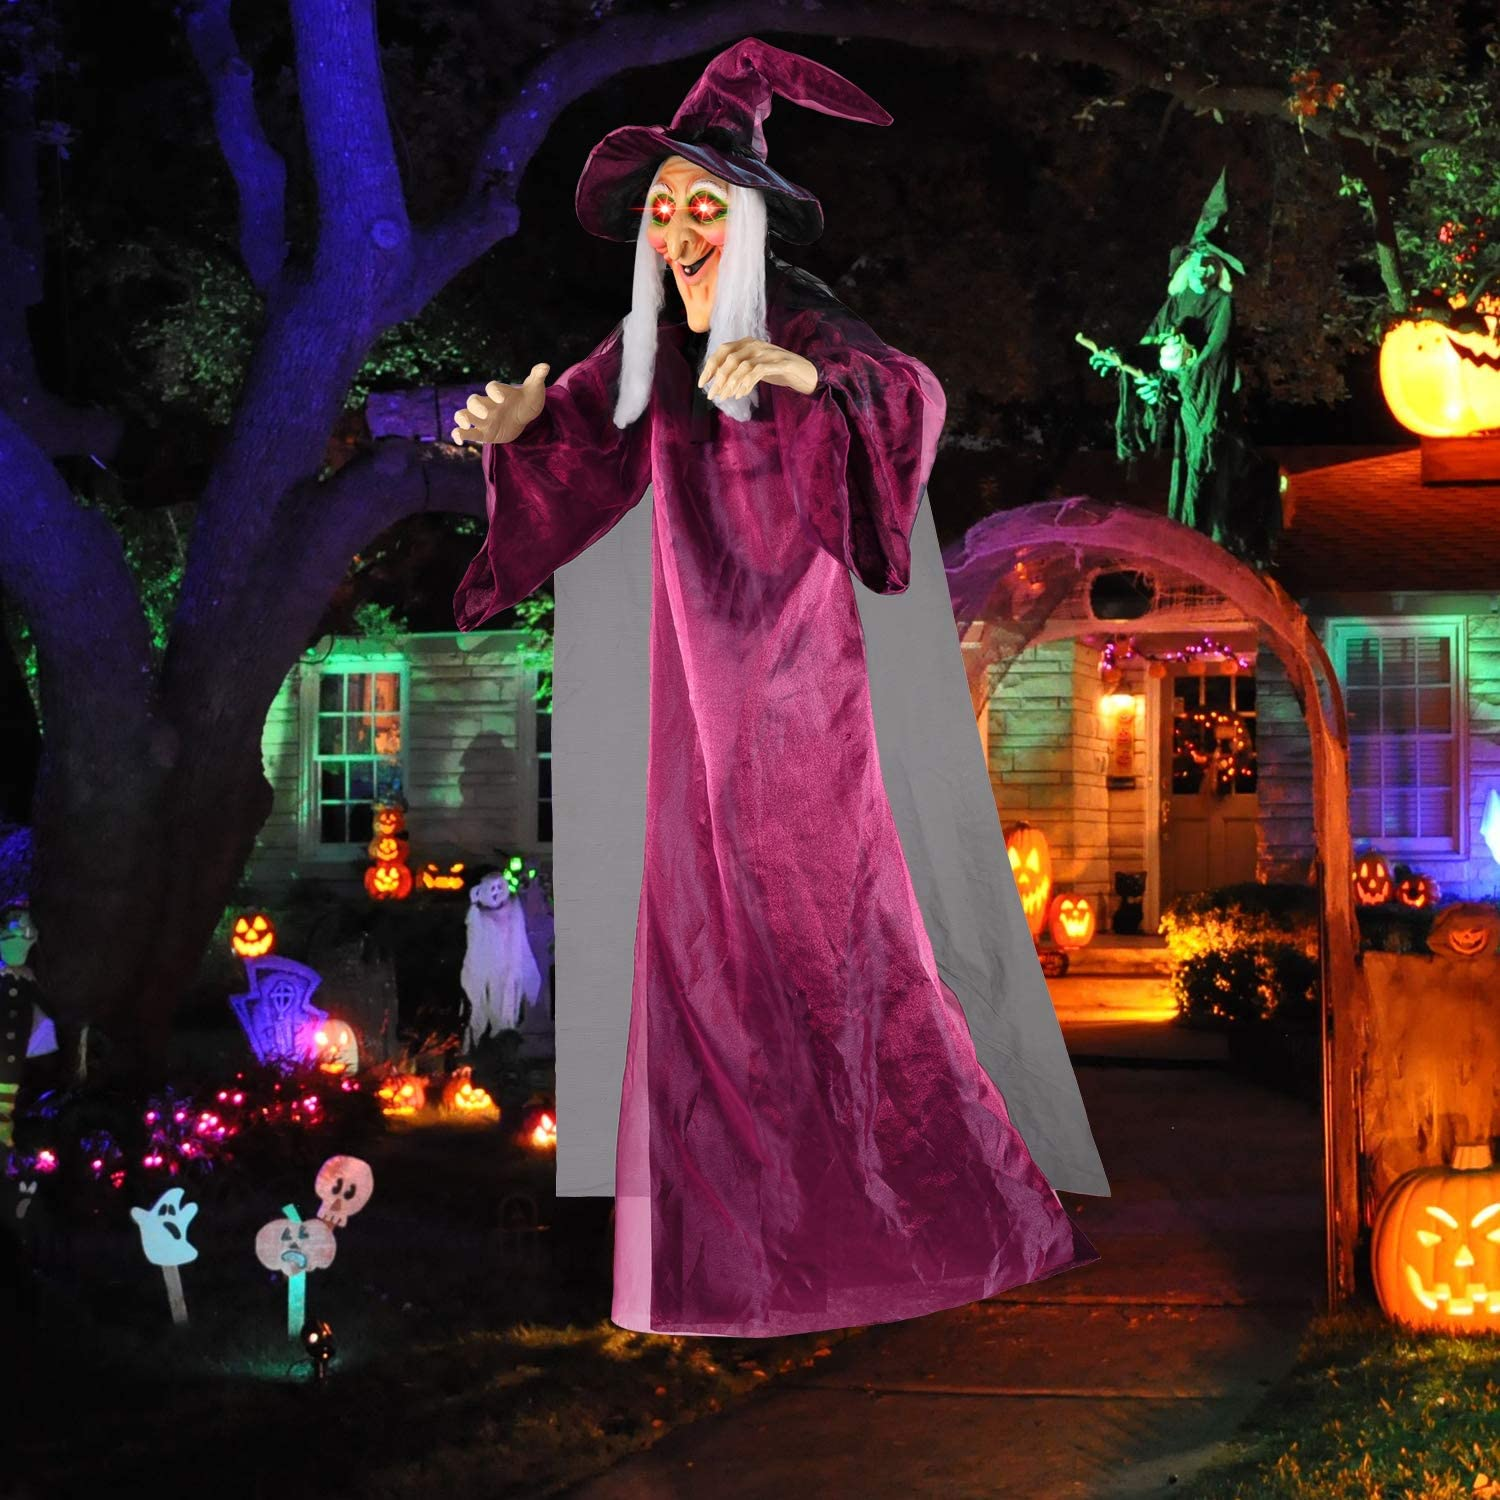 "UFUNGA Hanging Talking Witch 71"" Life Size Halloween Decorations Outdoor Halloween Witch Decor"